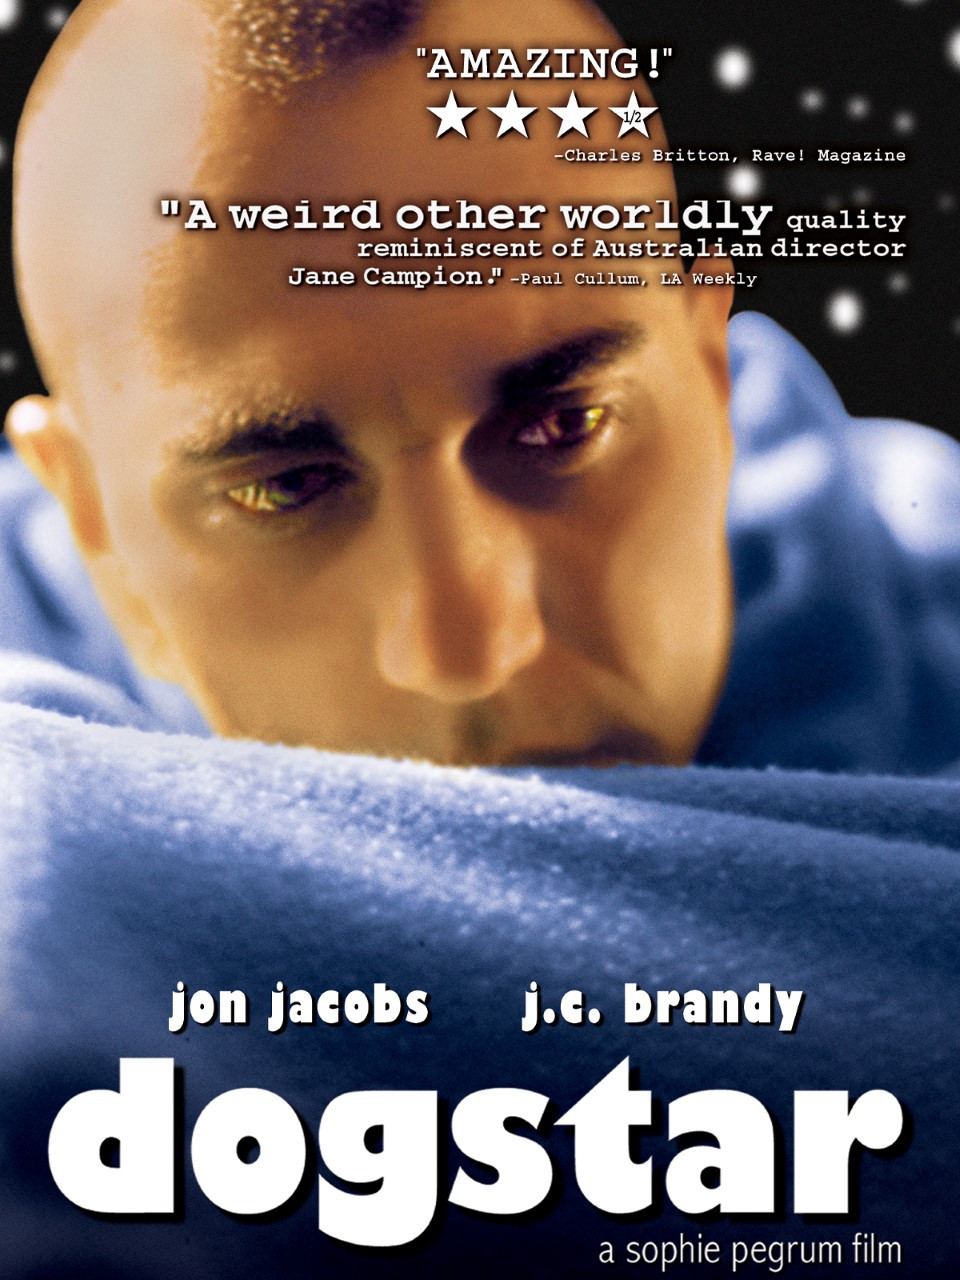 Poster for Dogstar showing protagonist.